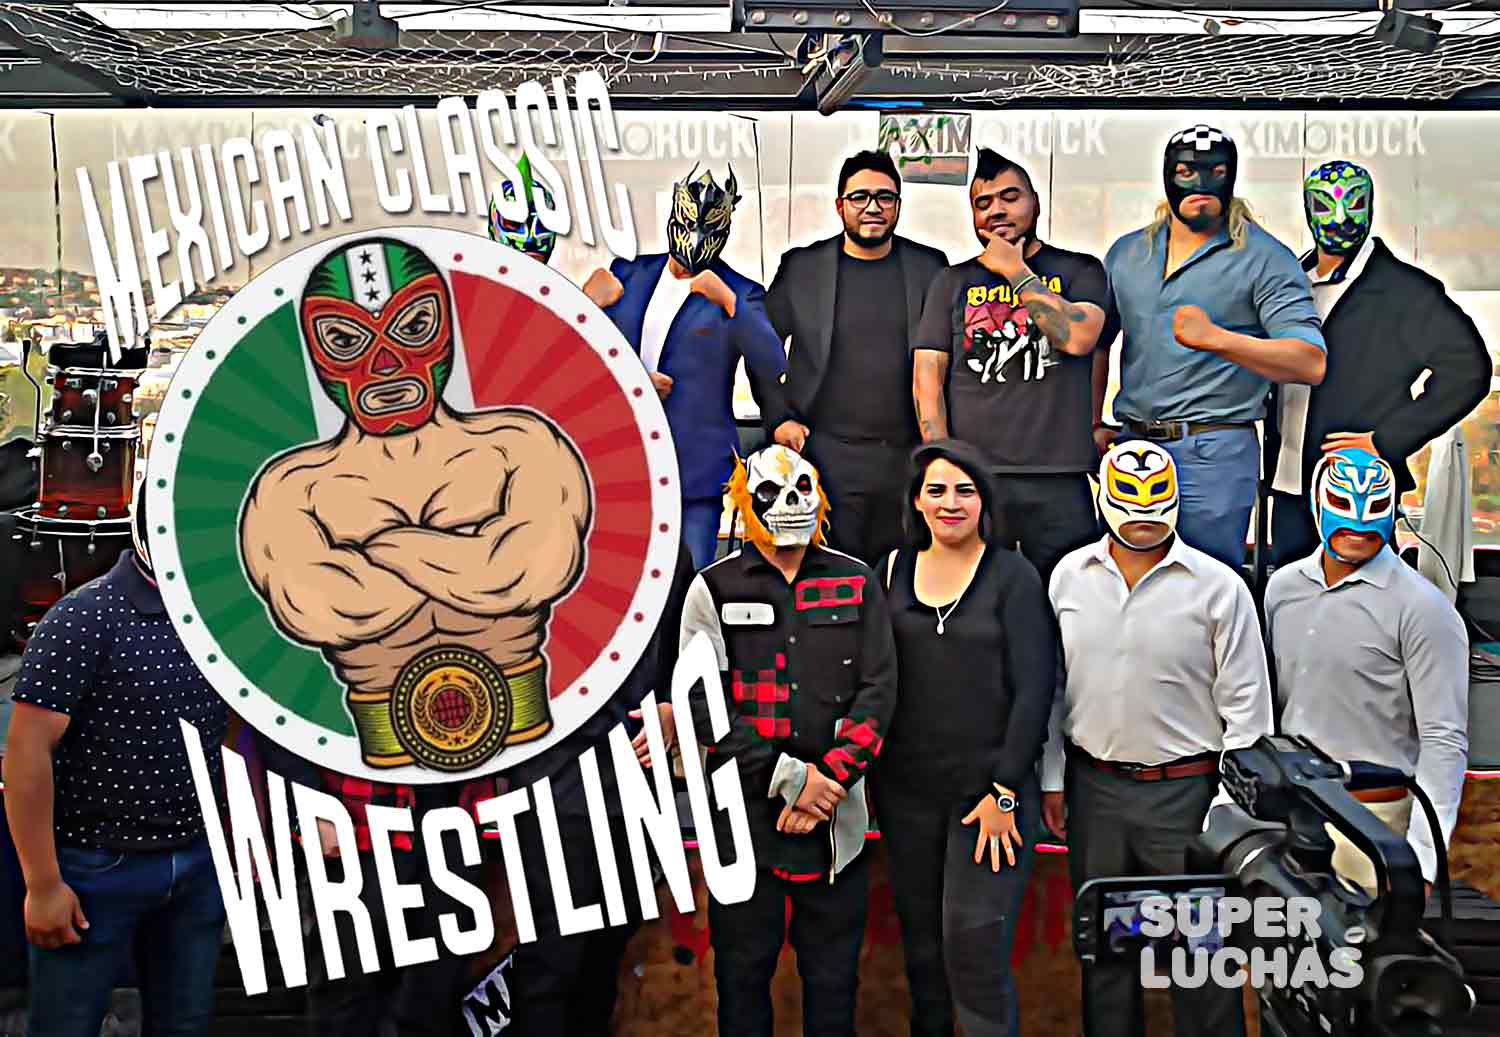 Mexican Classic Wrestling